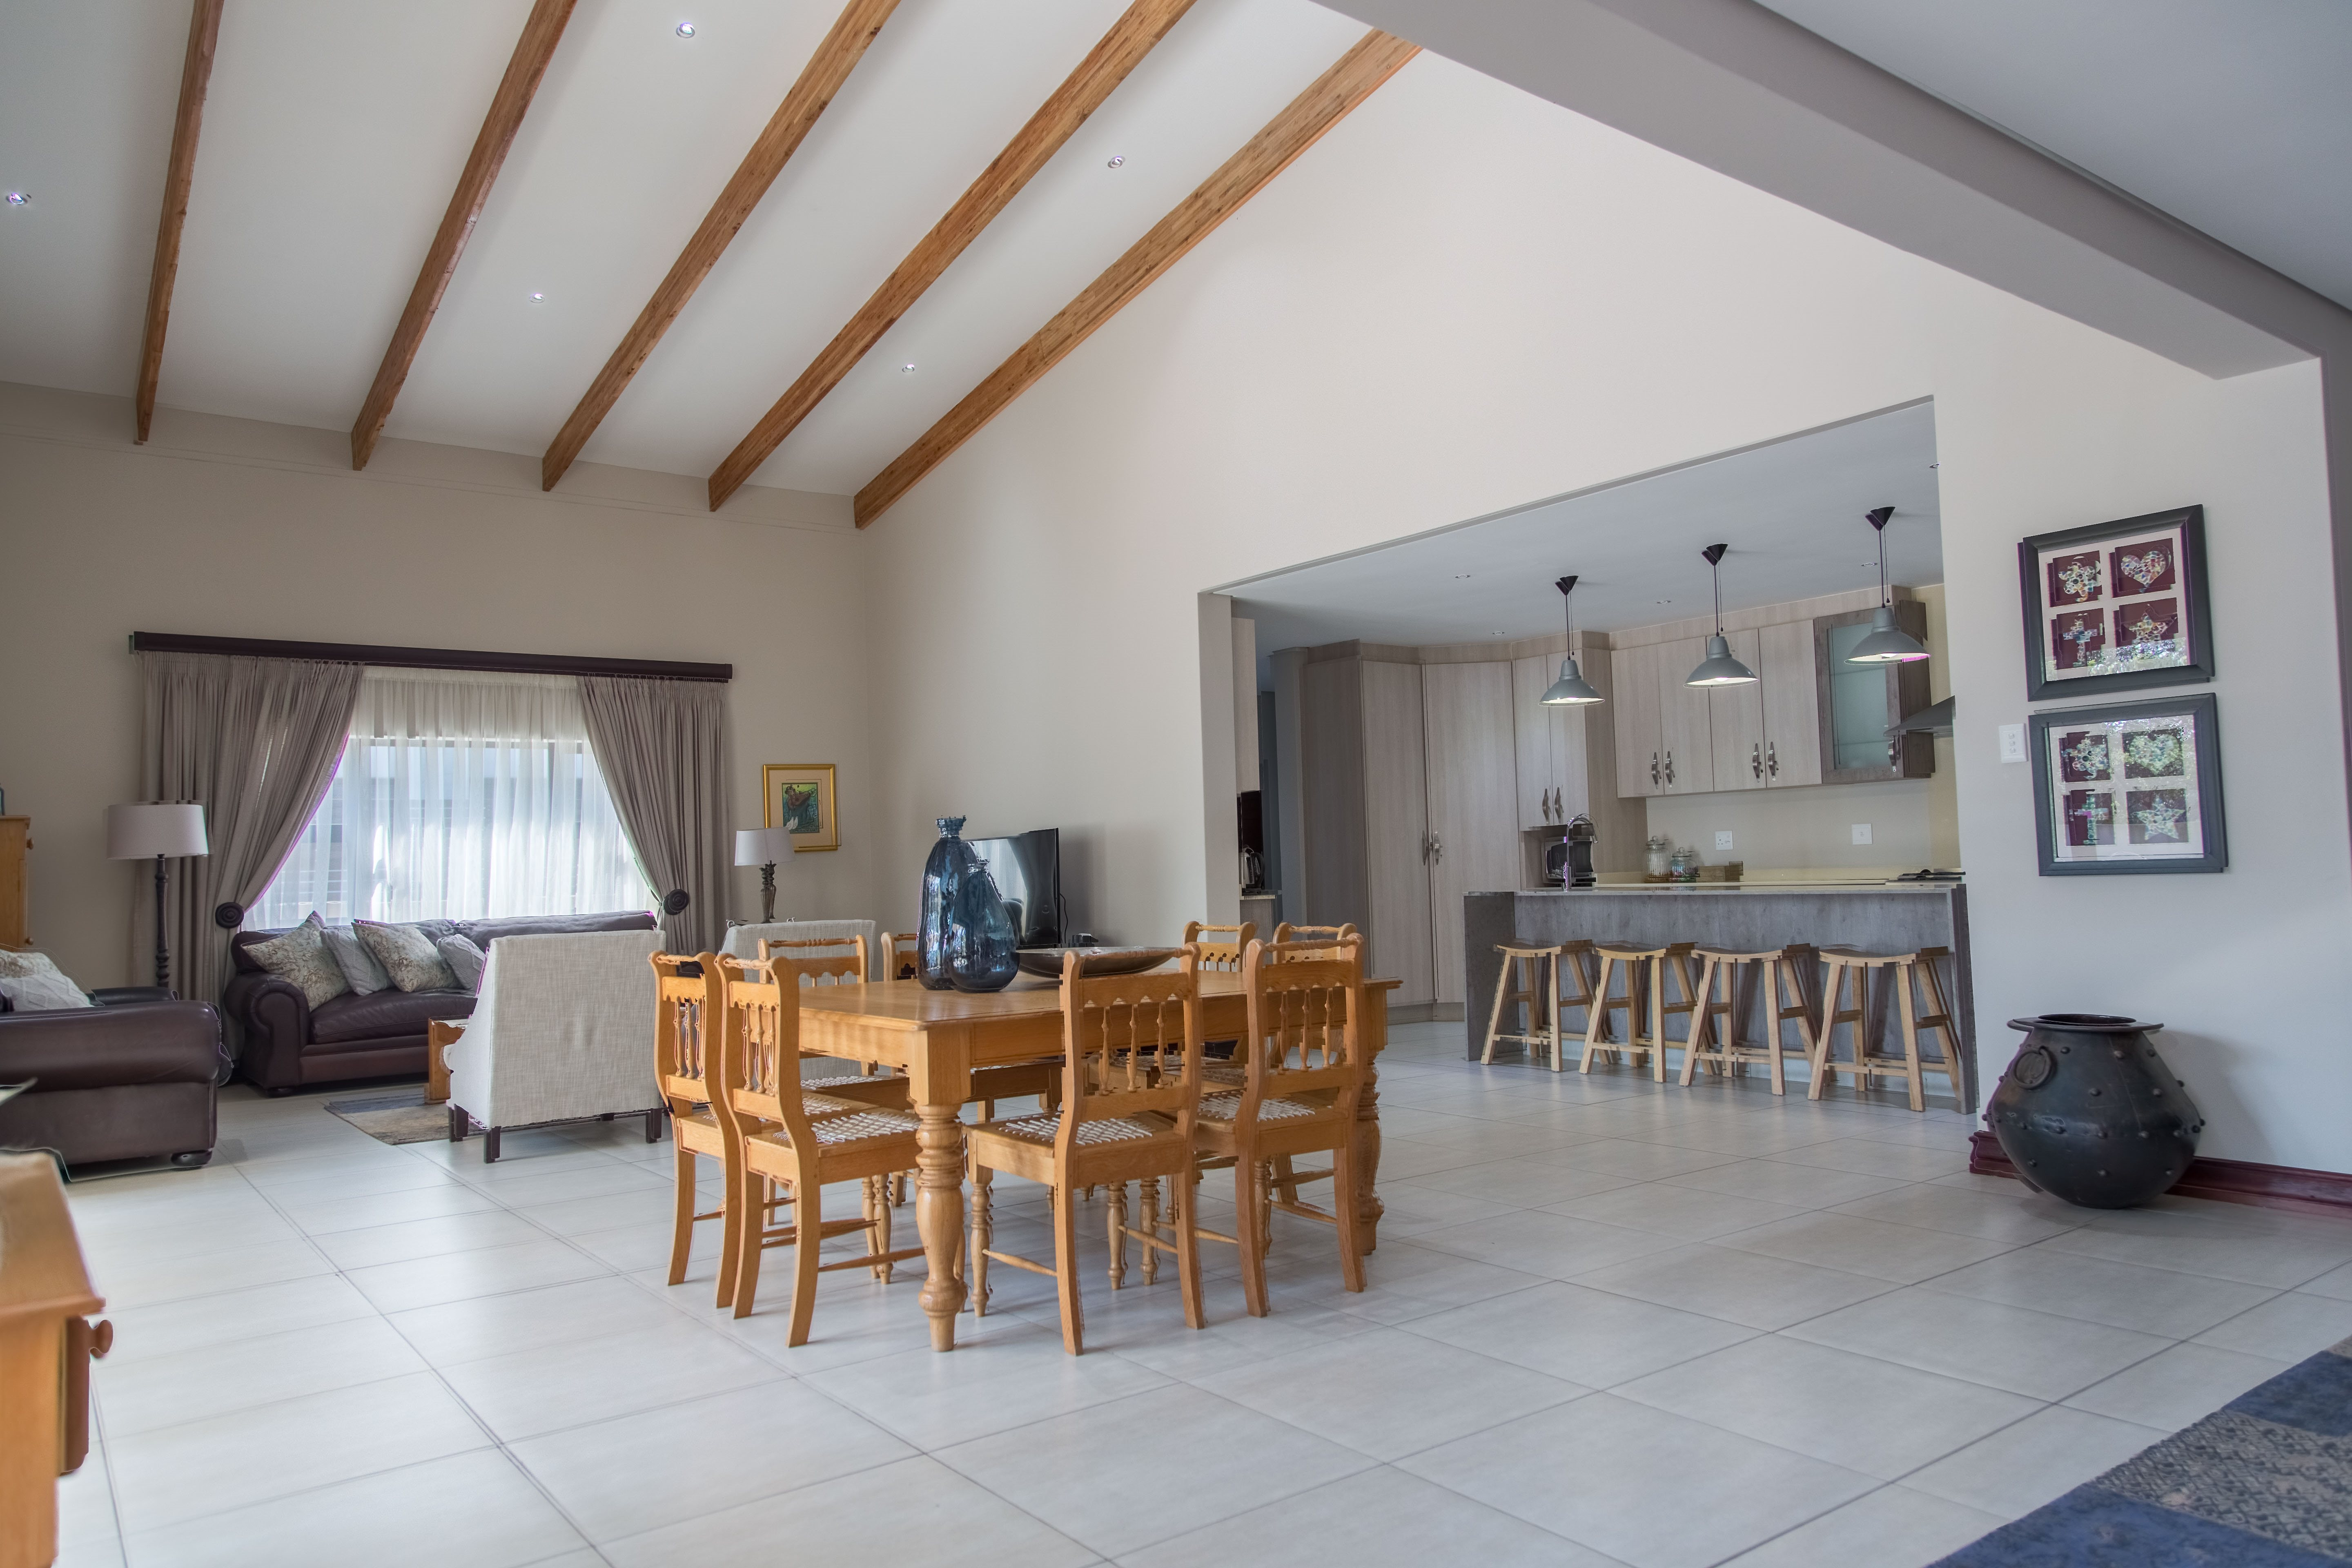 Meer En See property for sale. Ref No: 13515380. Picture no 14